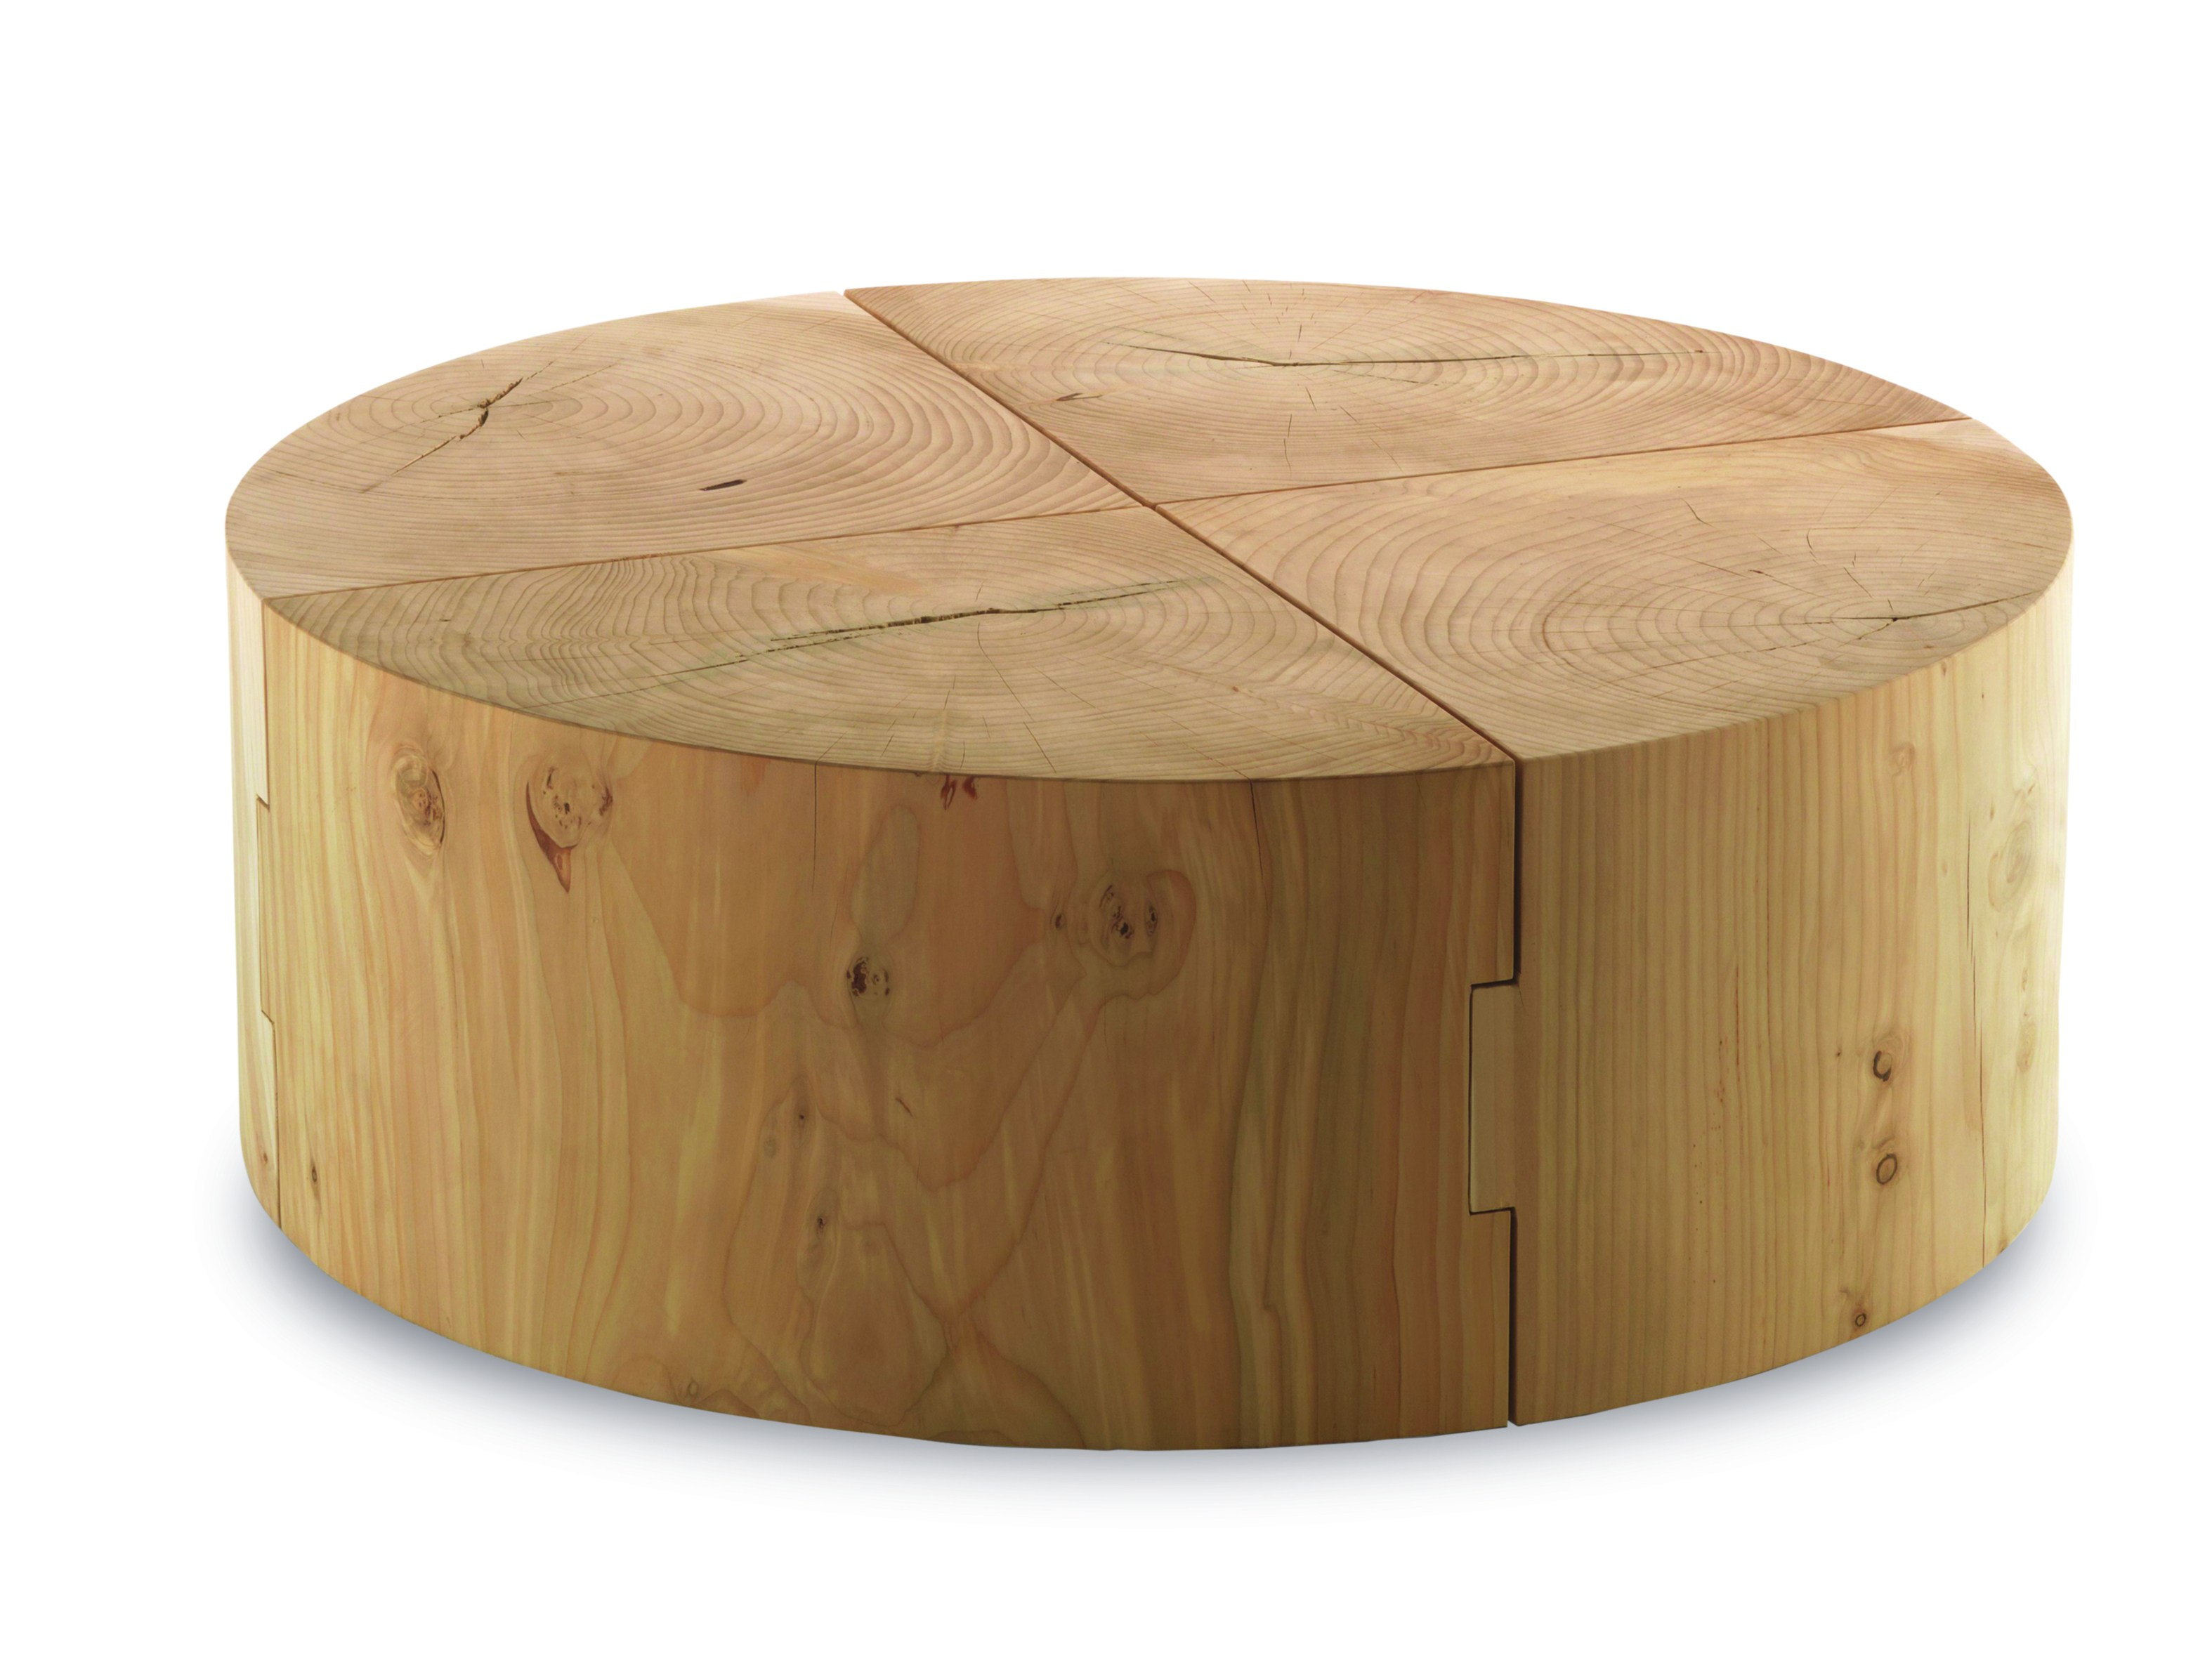 Square solid wood coffee table eco block square coffee table by square solid wood coffee table eco block square coffee table by riva 1920 design crs riva1920 geotapseo Choice Image